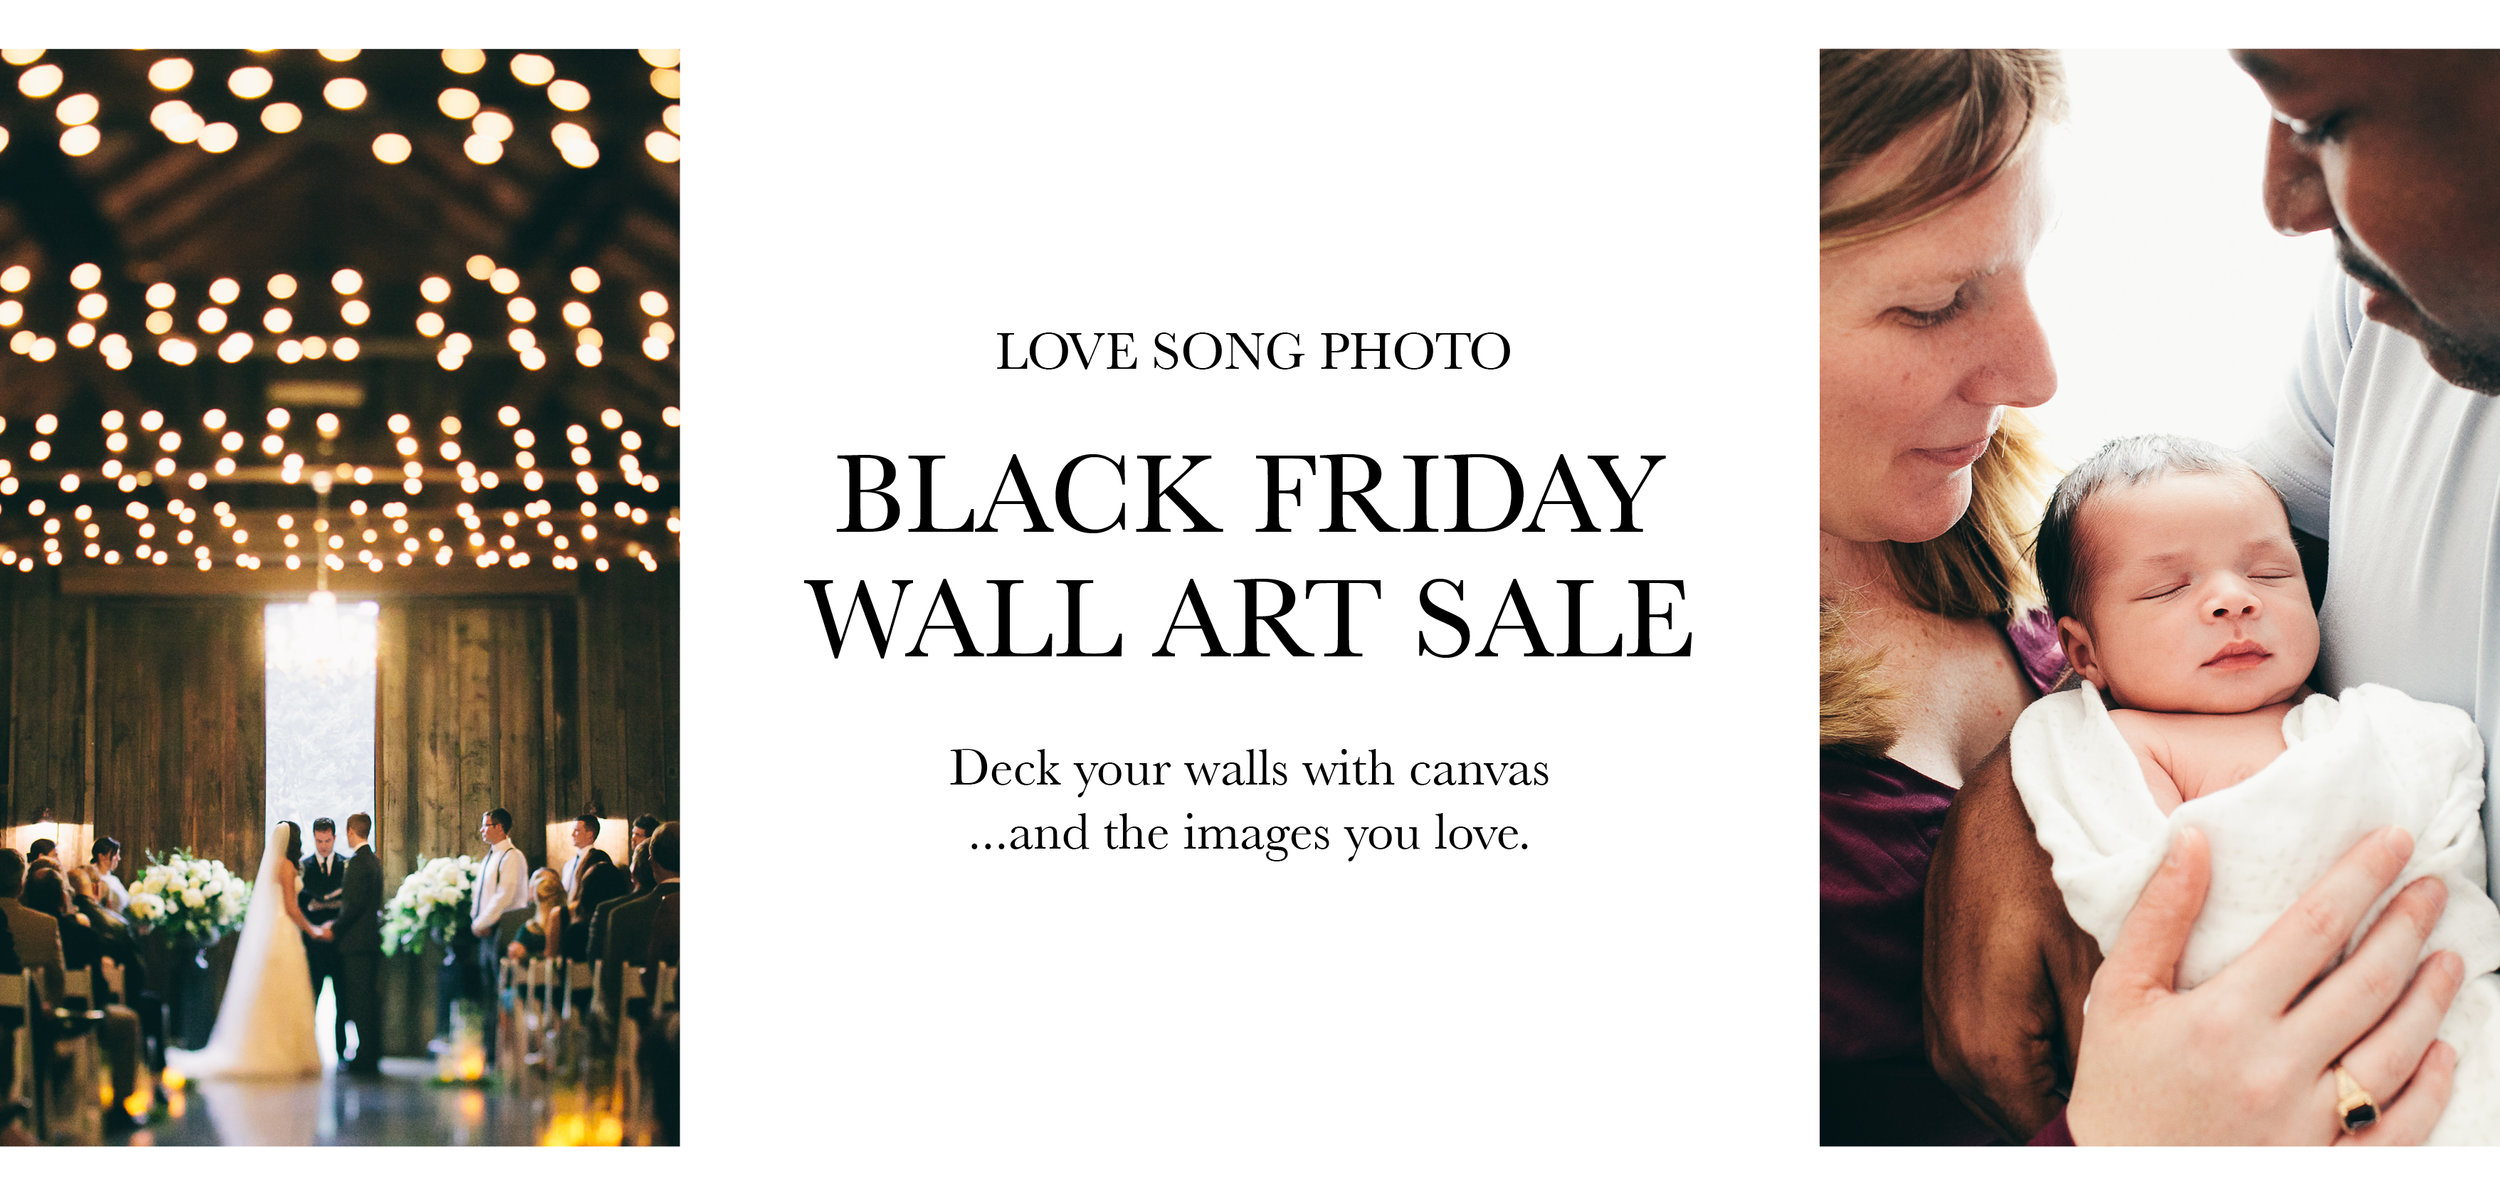 seattle wedding & portrait photographer black friday deal